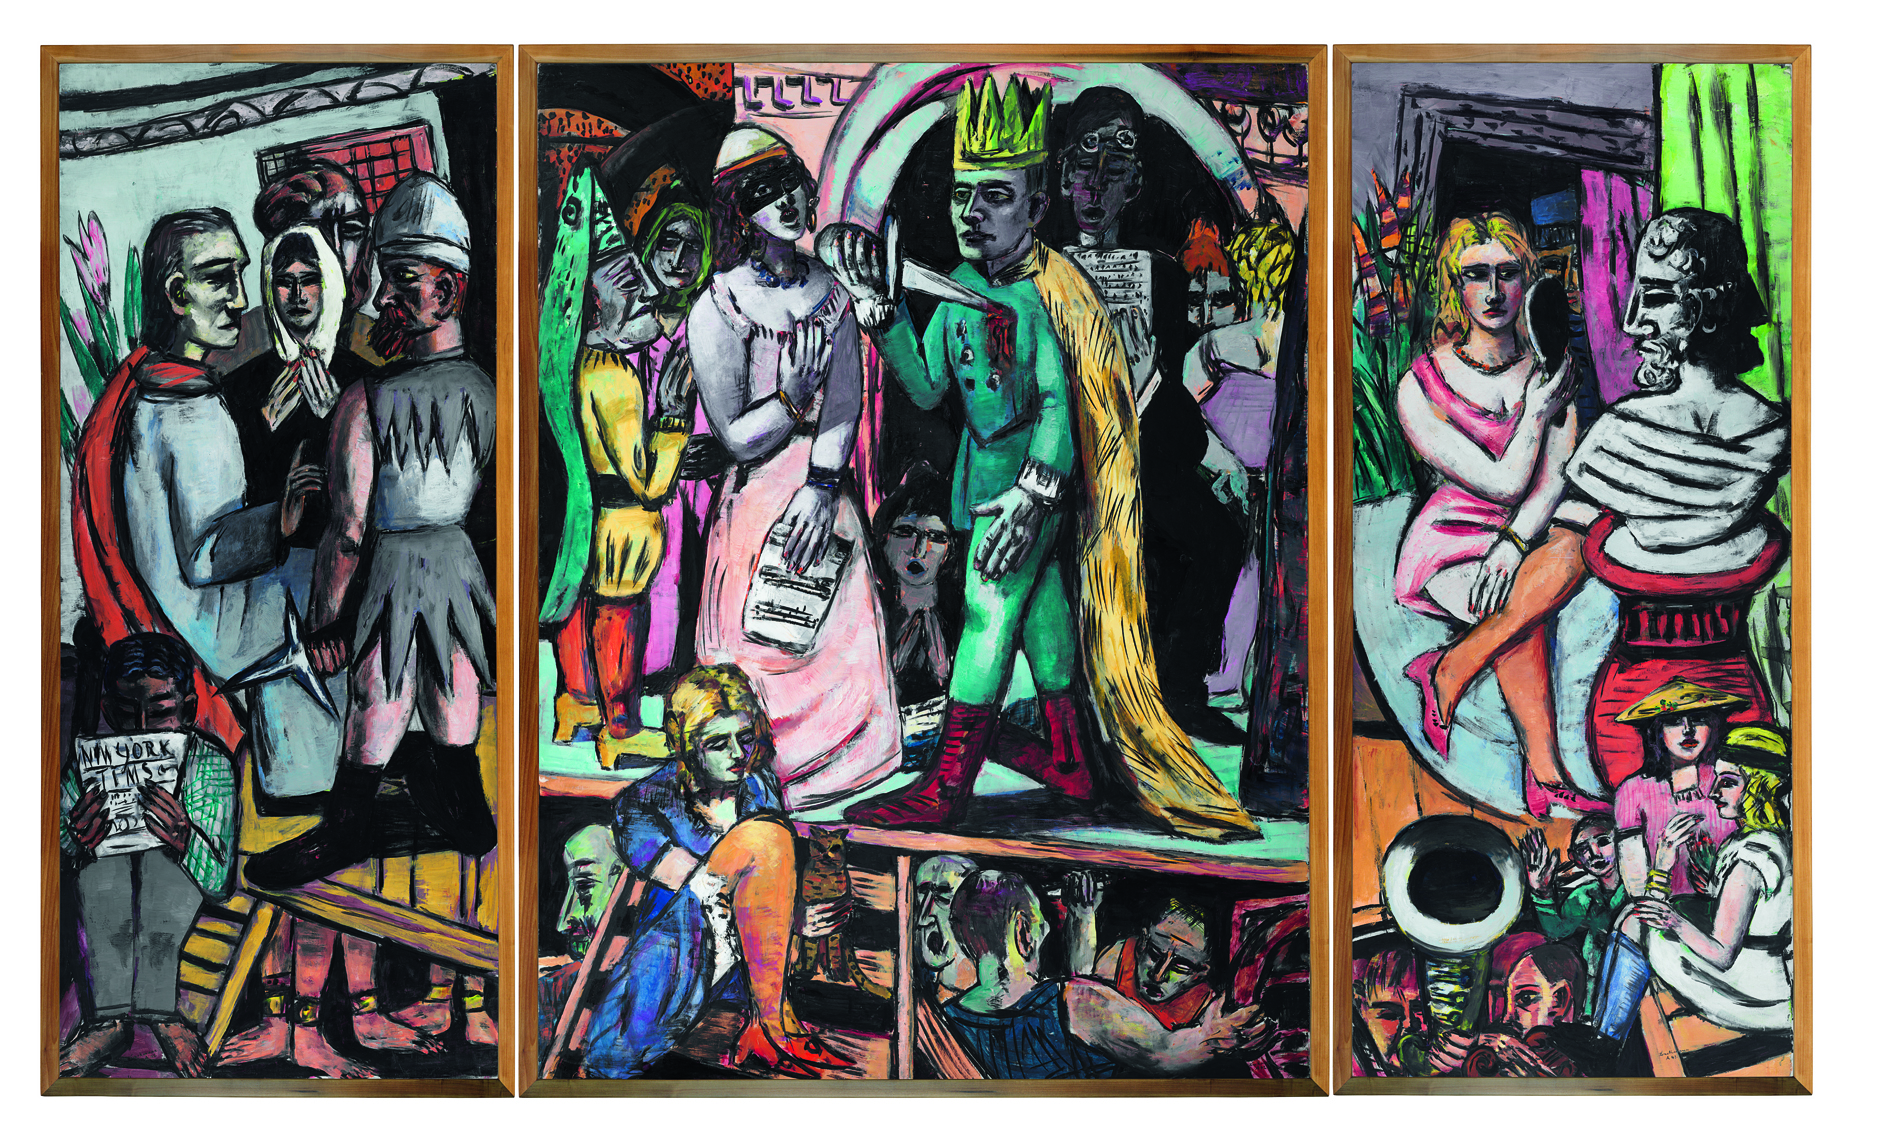 Max Beckmann: Schauspieler. Triptychon 1941/42, Harvard Art Museums/Fogg Museum, Cambridge, MA, Schenkung Lois Orswell, © VG Bild-Kunst, Bonn 2018, Photo: Imaging Department, © President and Fellows of Harvard College